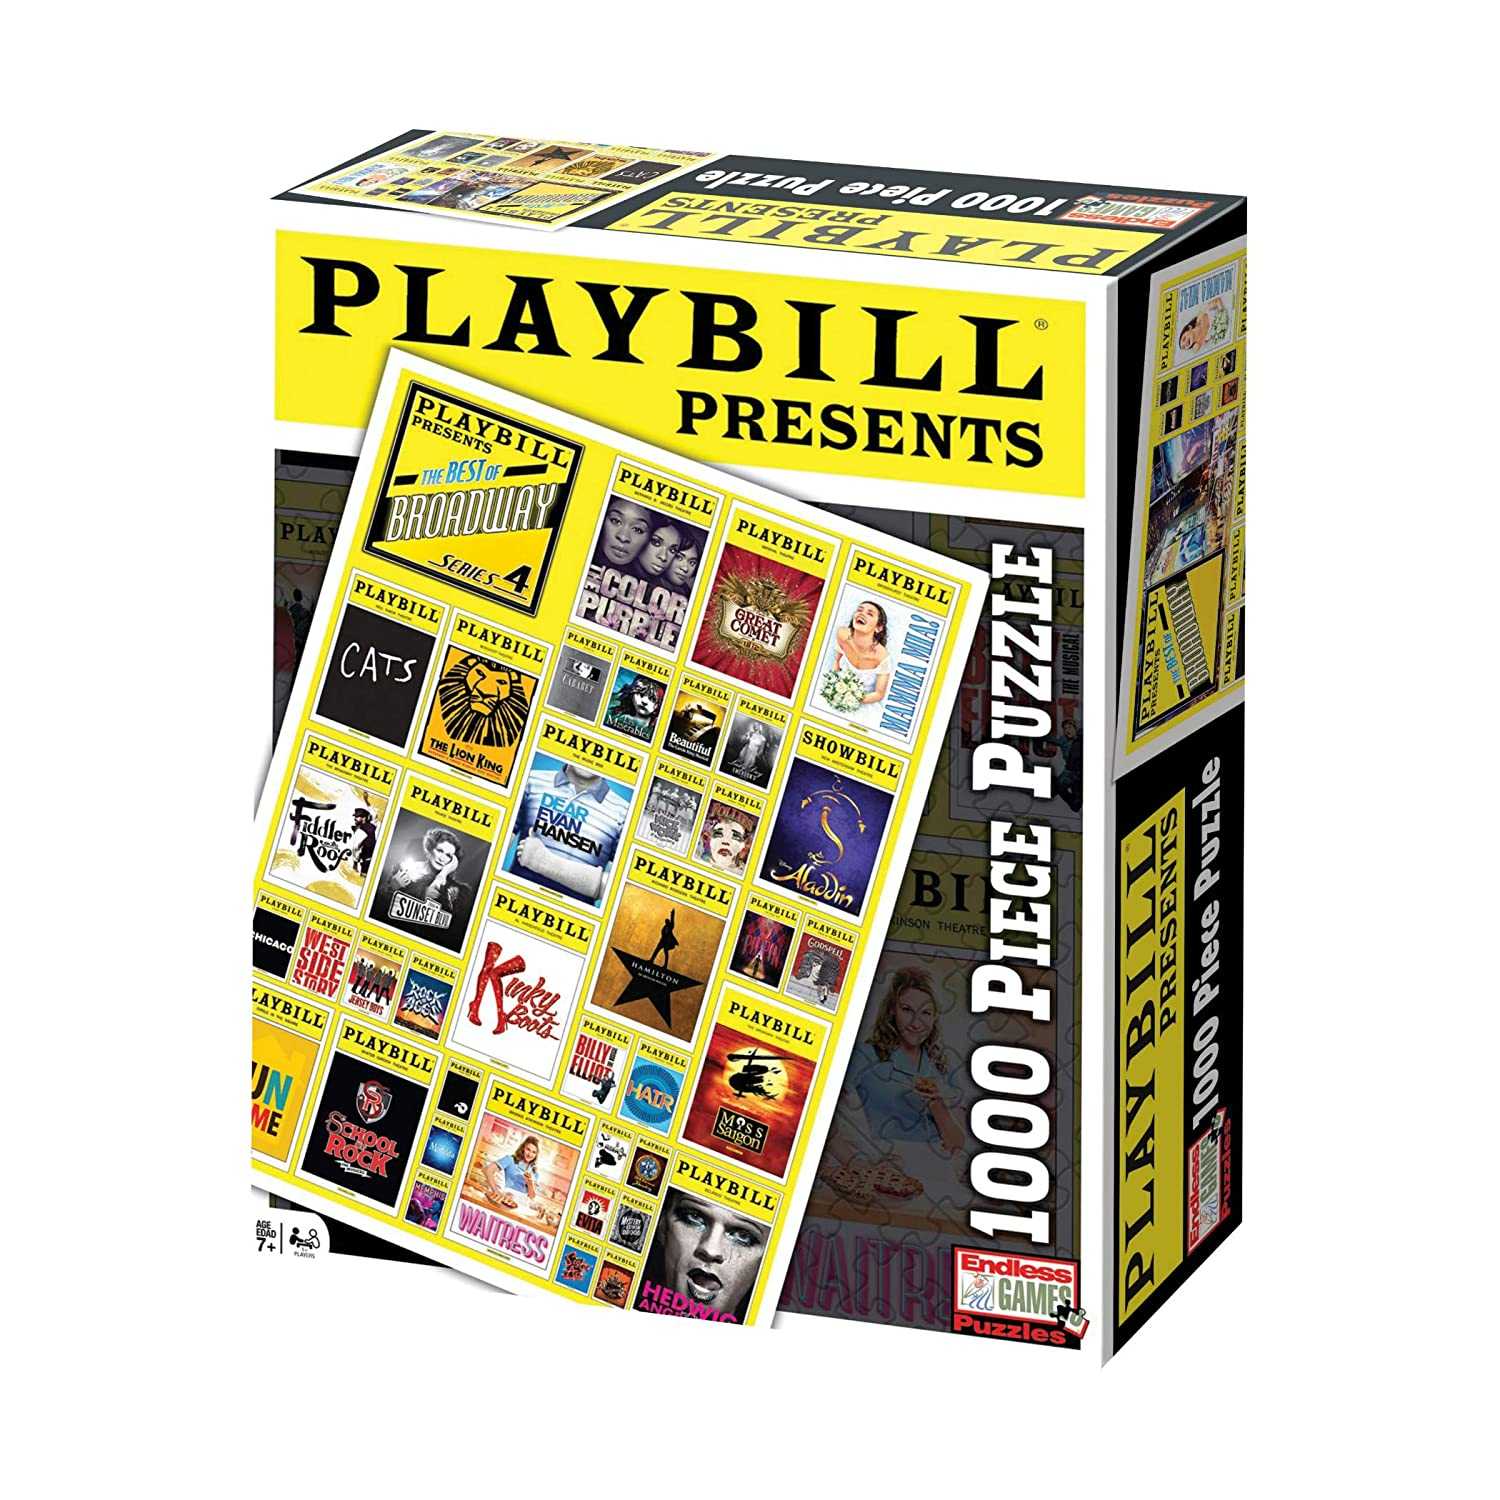 Playbill Broadway Cover Puzzle 1000 Piece Endless Games 5005